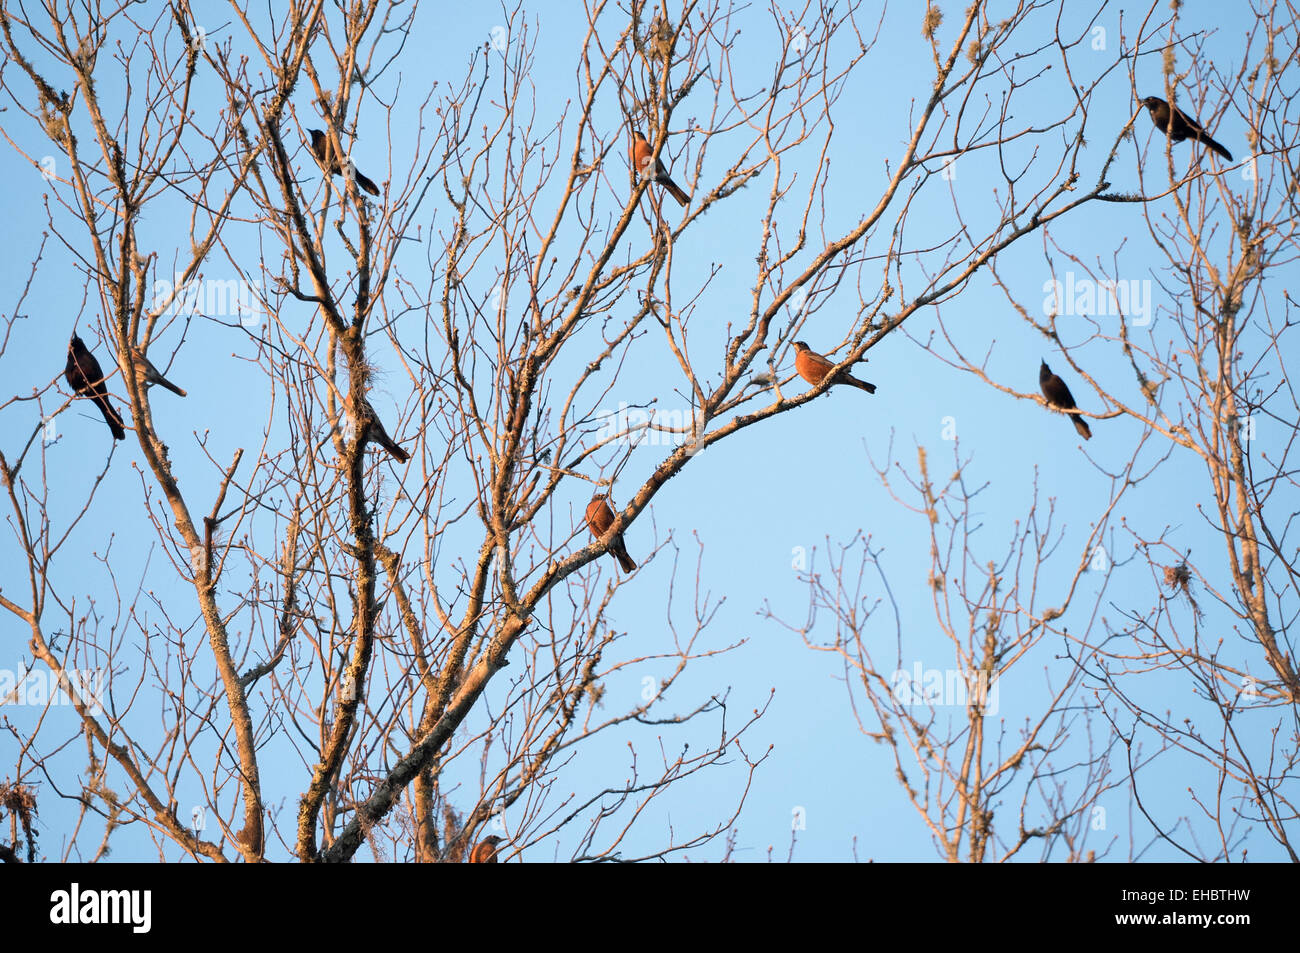 Dusky Blackbirds and Robins in bare winter Hickory tree - Stock Image